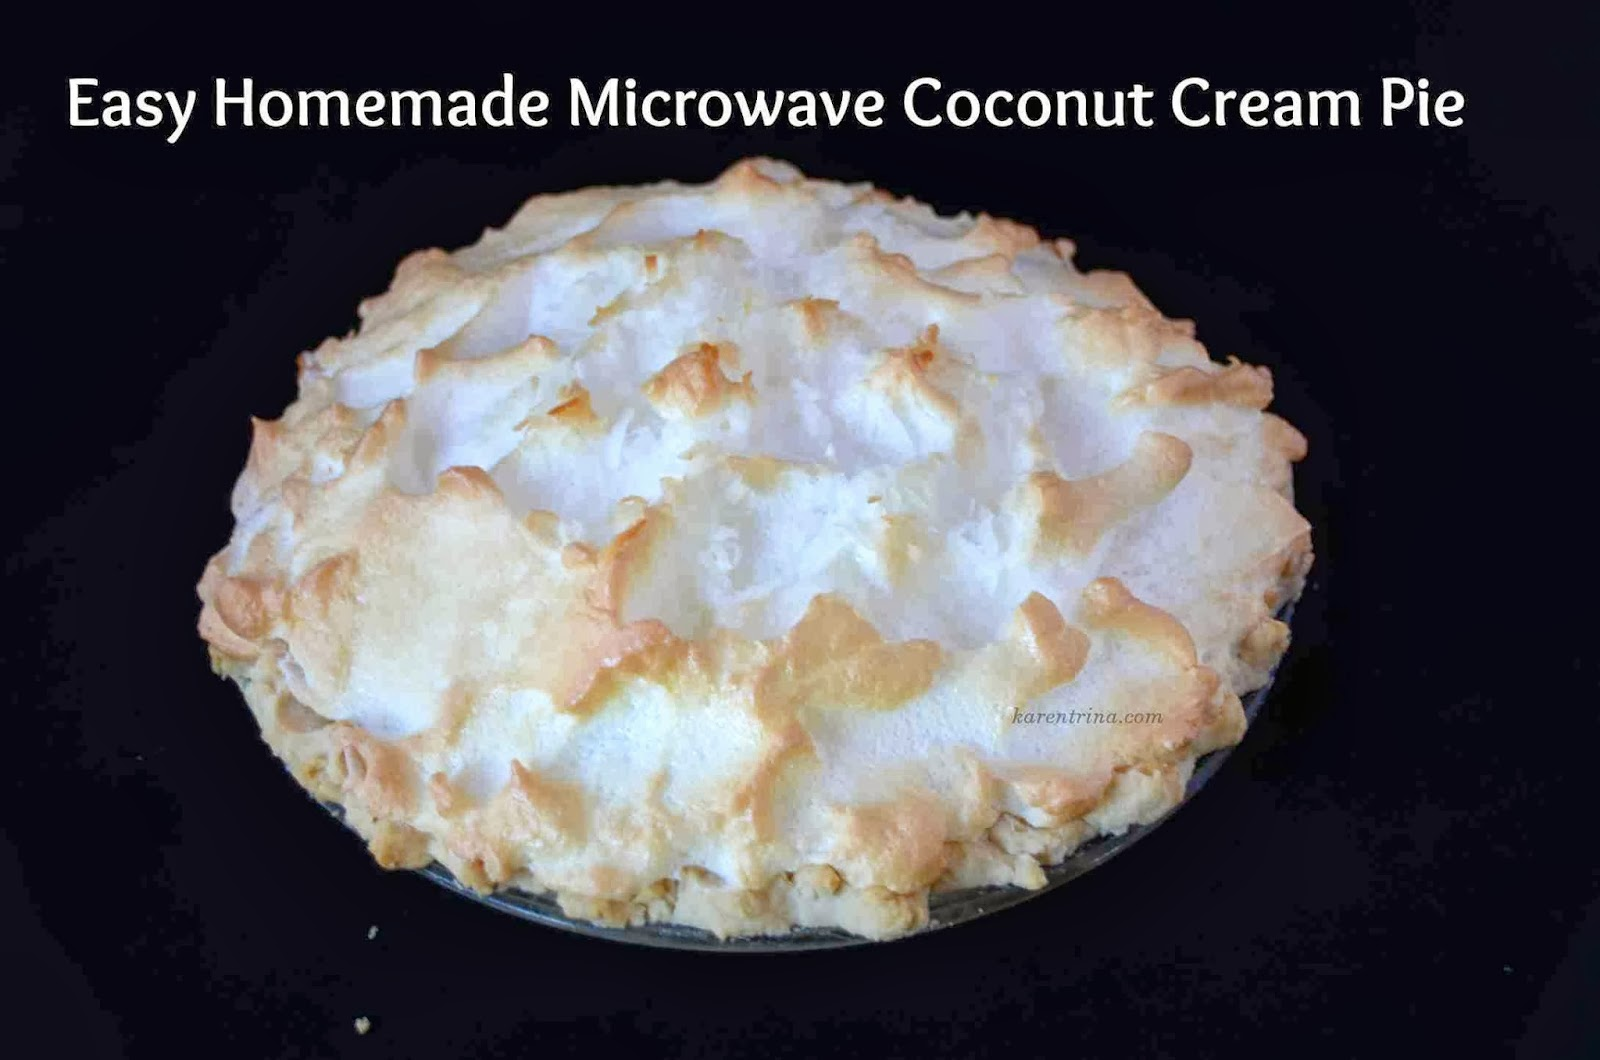 Micrwave coconut pie